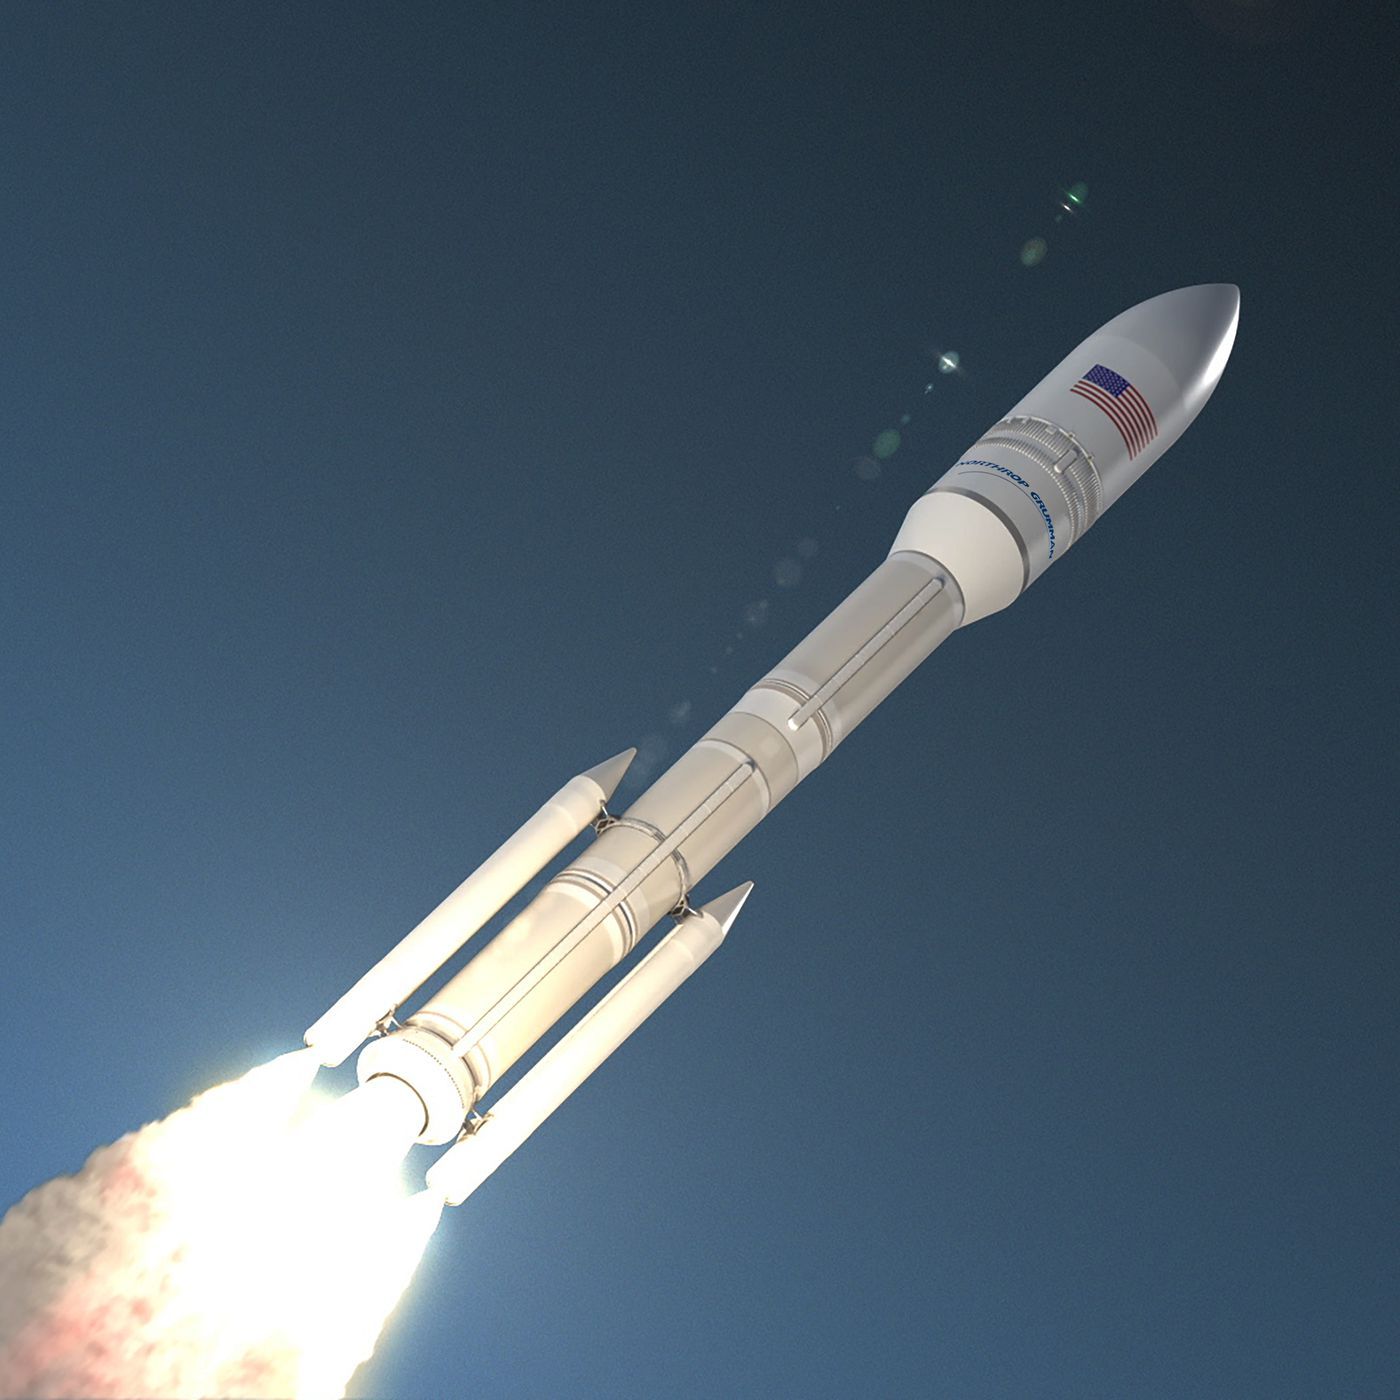 Northrop Grumman's new rocket suffers small explosion during